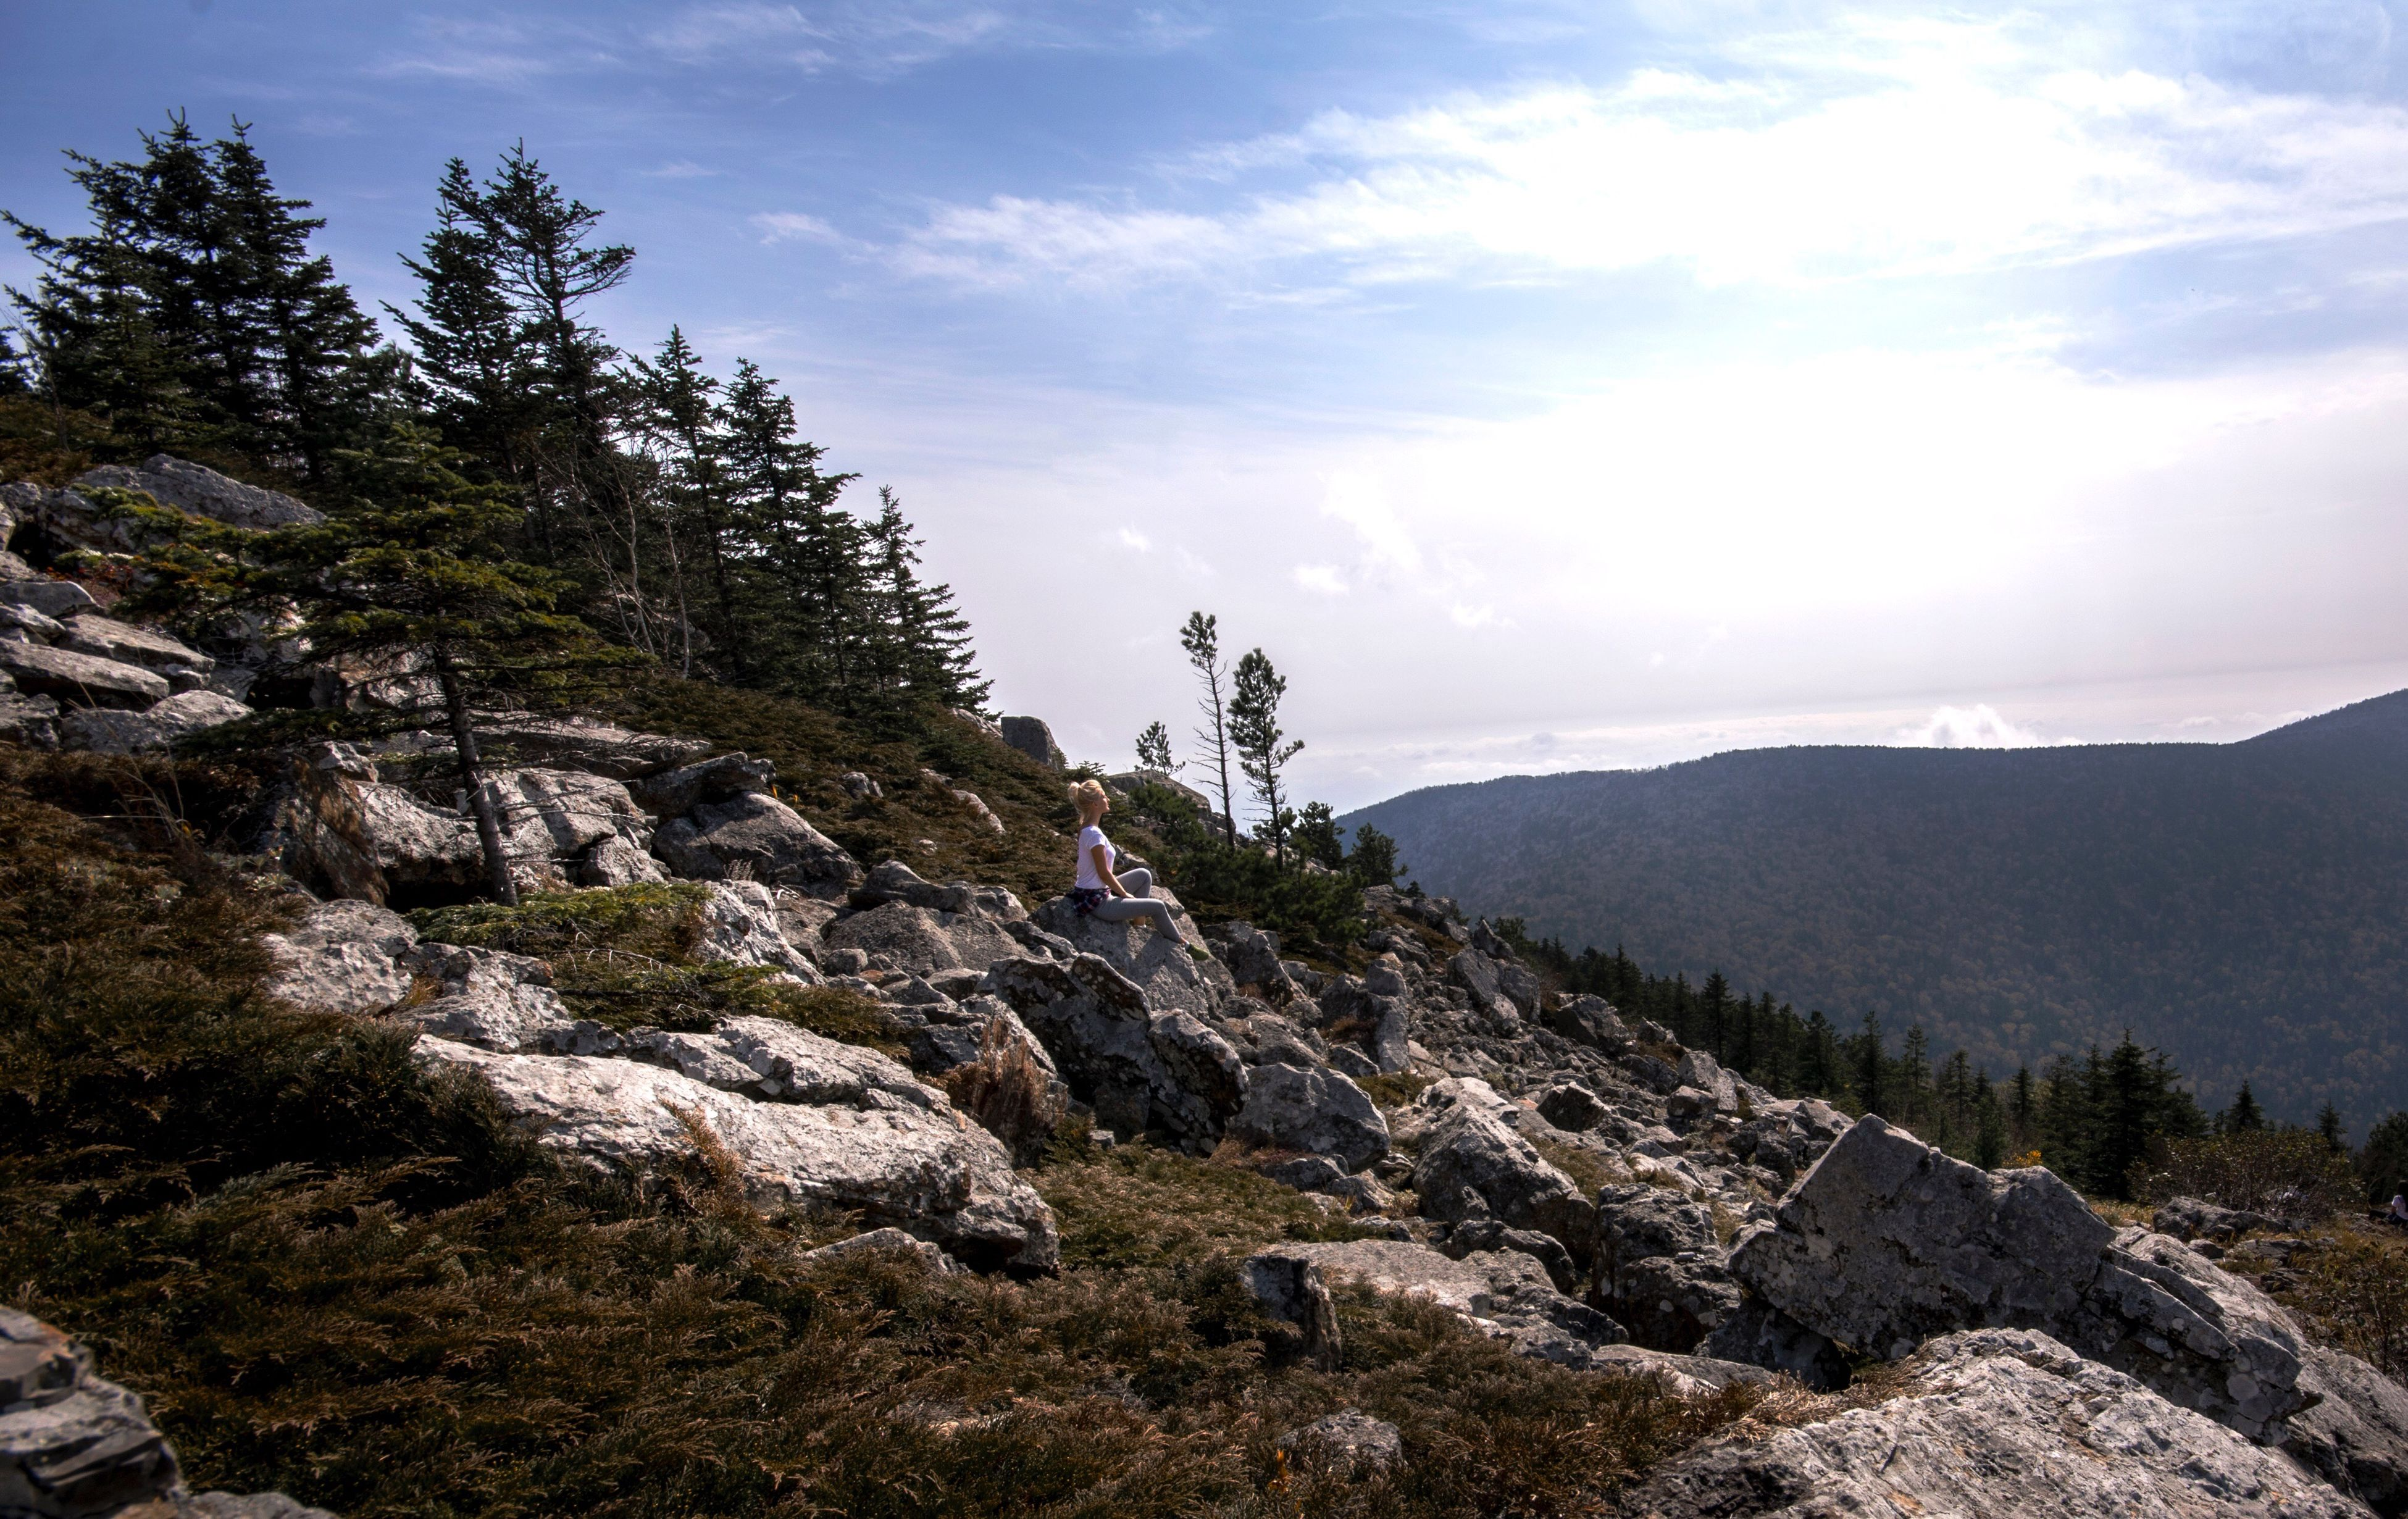 mountain, tranquil scene, tree, scenics, tranquility, non-urban scene, landscape, sky, beauty in nature, nature, mountain range, physical geography, remote, valley, cloud, solitude, cloud - sky, mountain peak, geology, rocky mountains, day, countryside, outdoors, rock formation, green, cliff, pine tree, non urban scene, tourism